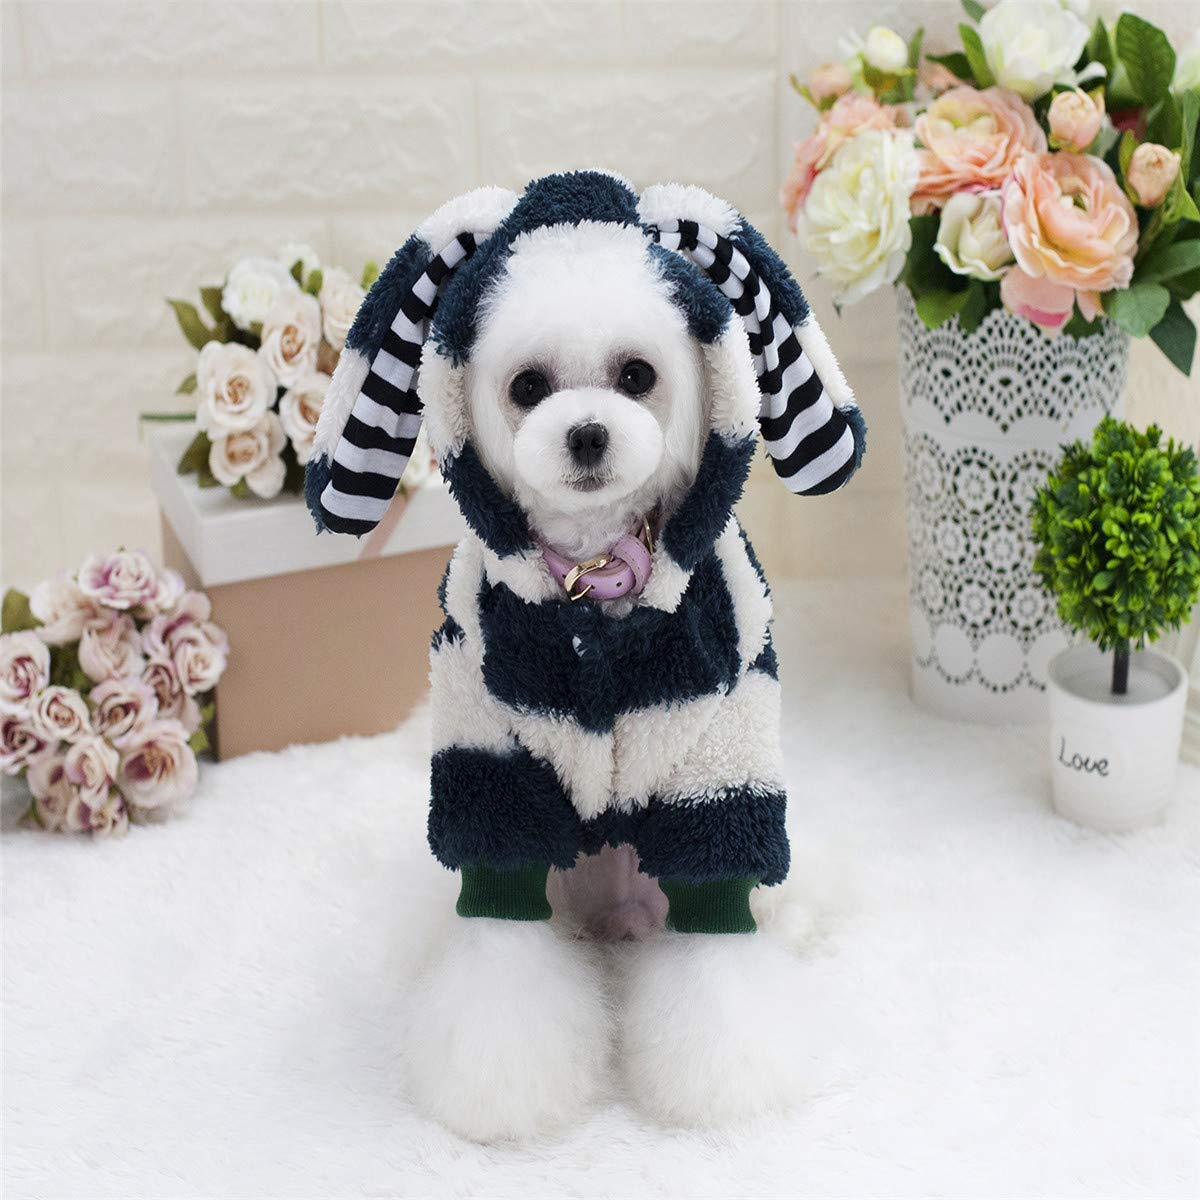 Green XXL Green XXL Party Pet Costume Dog Coat Autumn and Winter New Puppy Clothes Dog Clothes pet Clothing Big Ears Rabbit Two-Legged Fleece (color   Pink, Size   XXL) Pet Uniform (color   Green, Size   XXL)